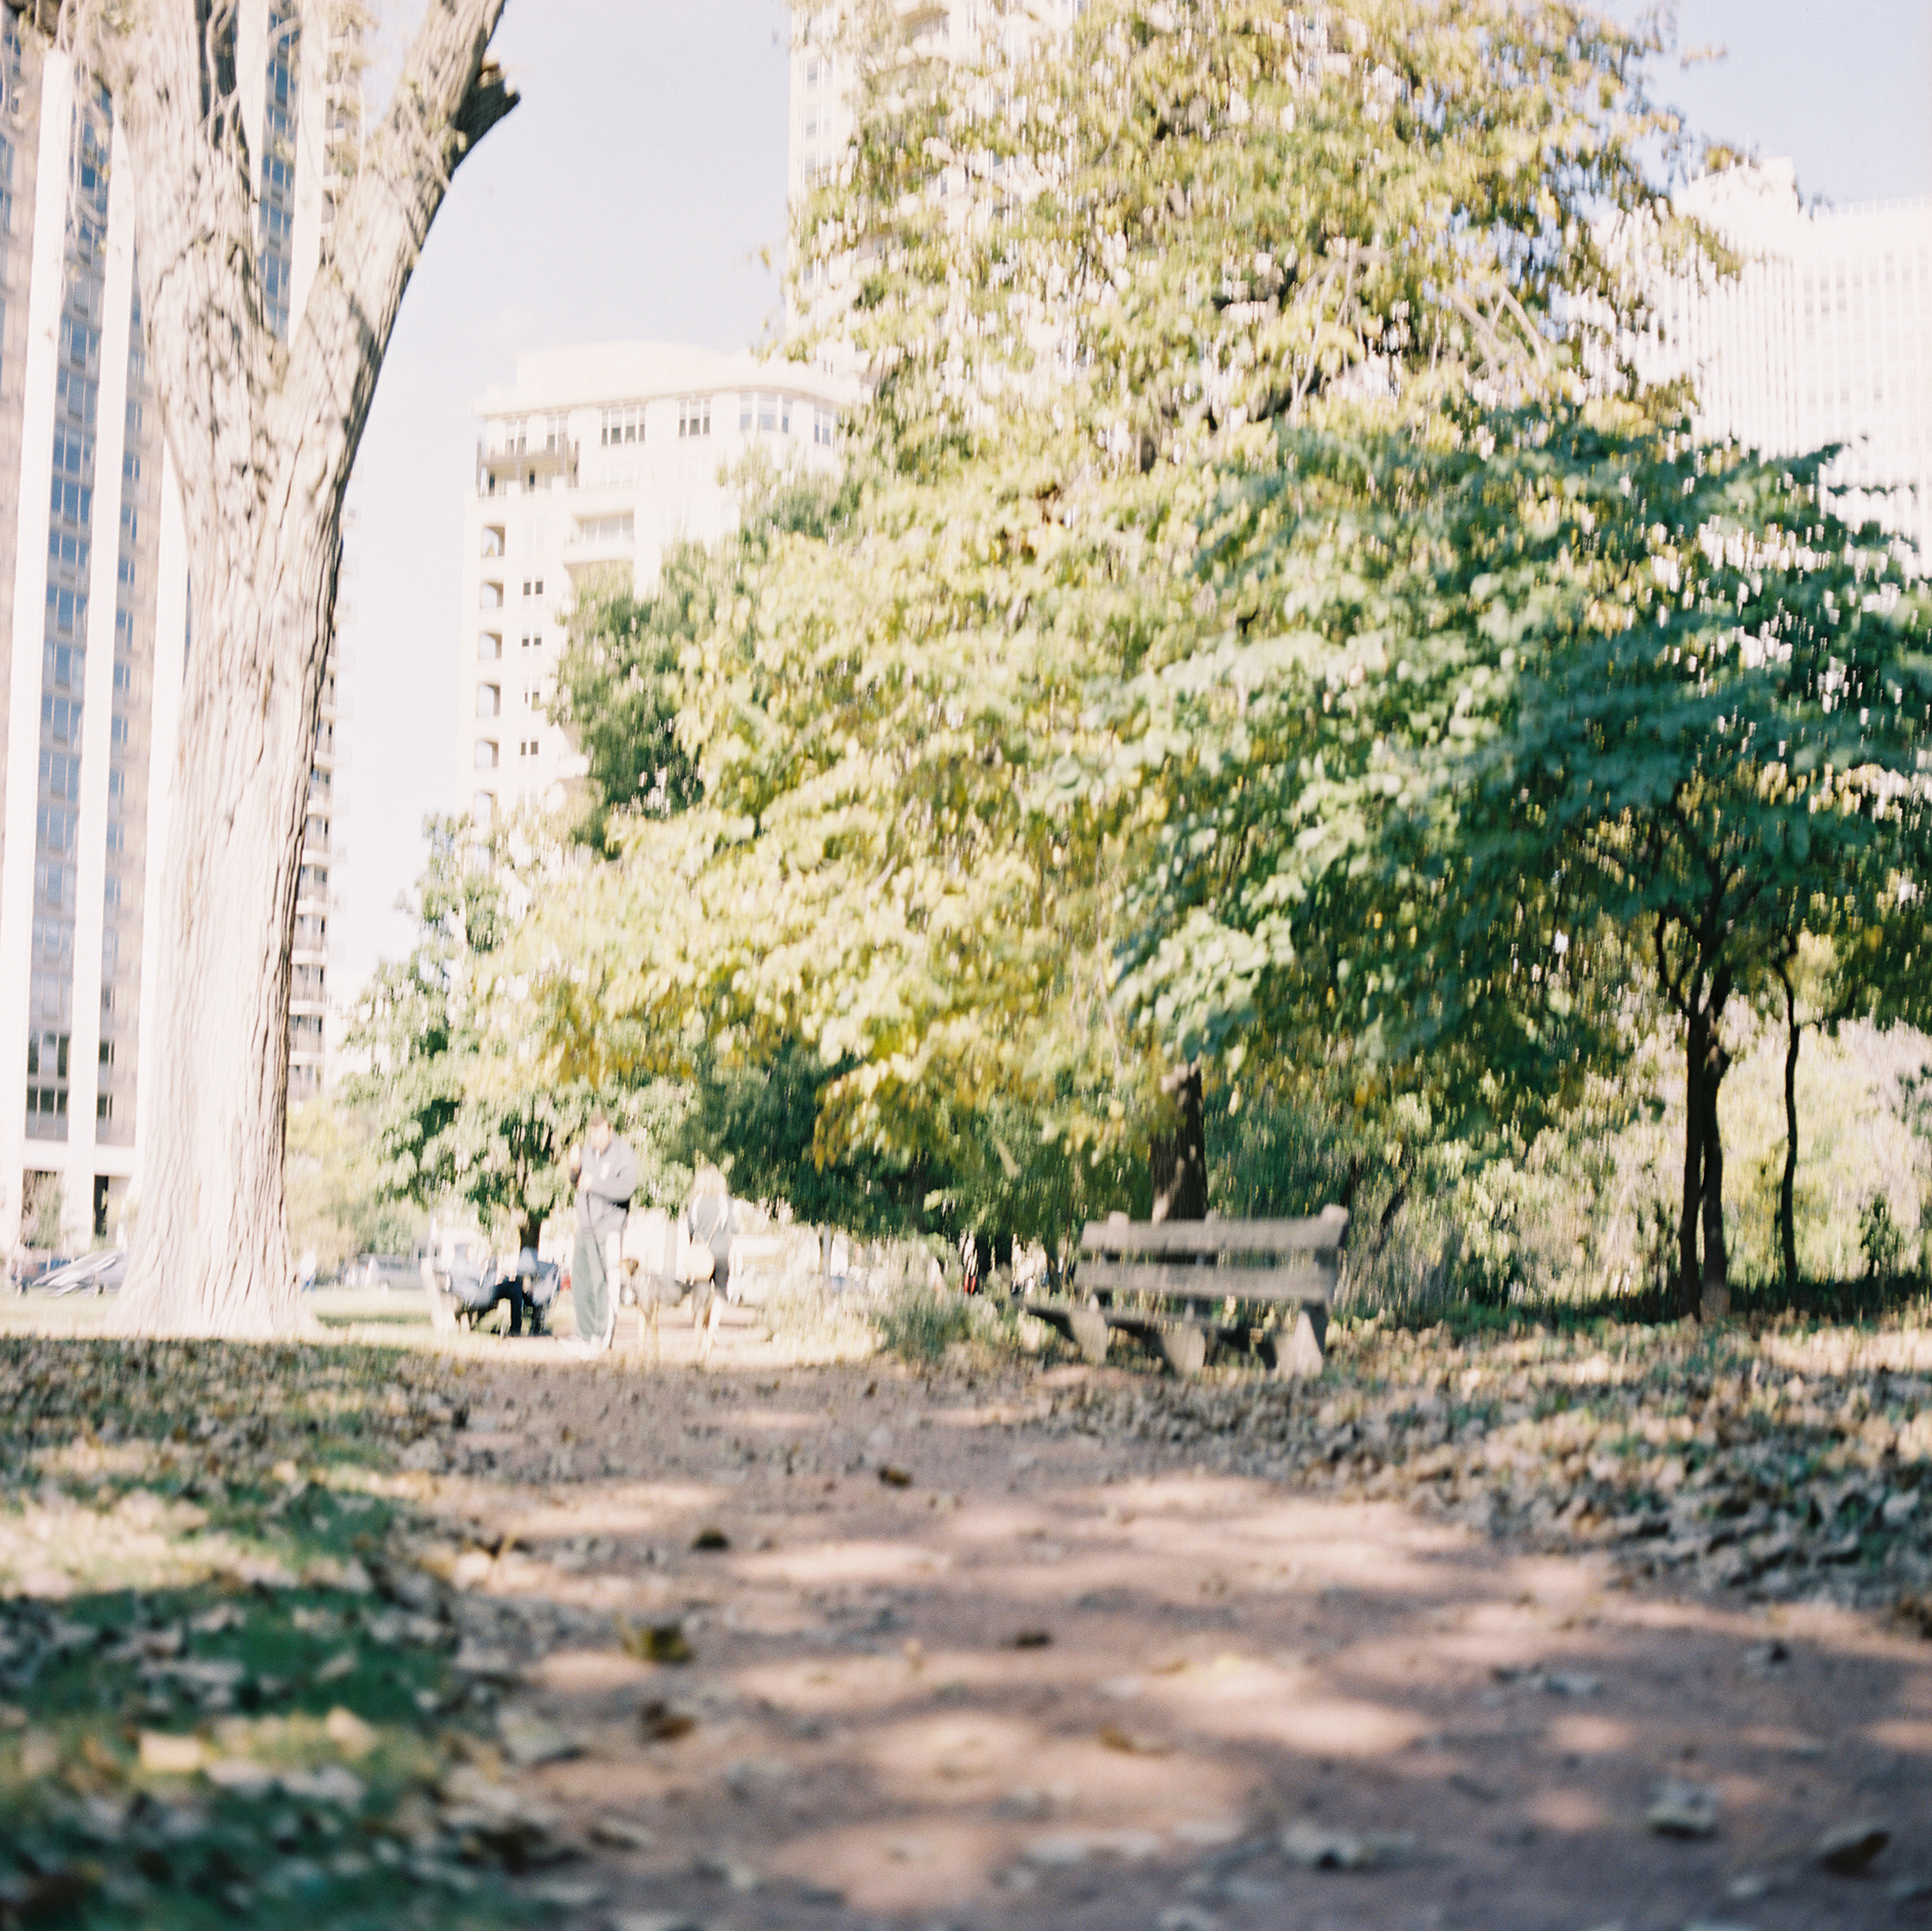 First photograph taken with the Hasselblad